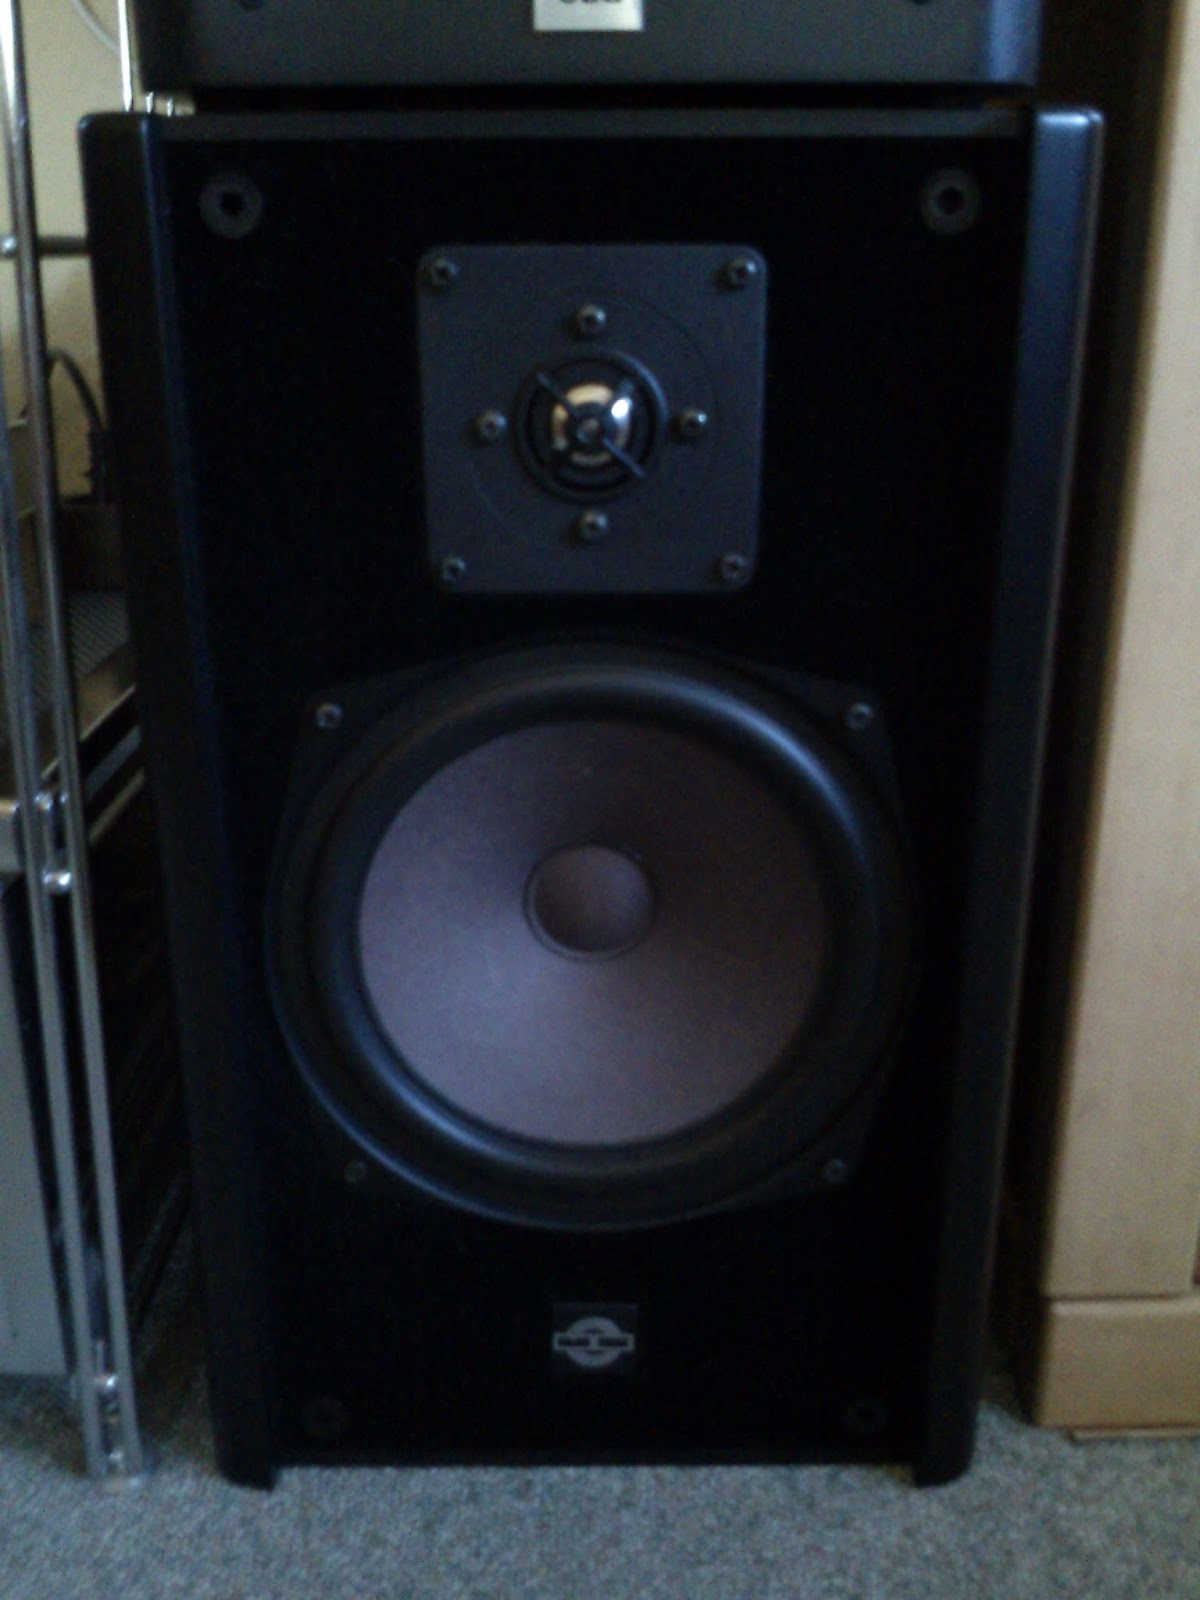 Vintage Vs Modern Speaker Comparison Mb Quart 280 Jbl Studio Premium Series Amplifiers Digital Car Audio System One Is The Famous Other 230 Former What We Would Today Call A Latter More